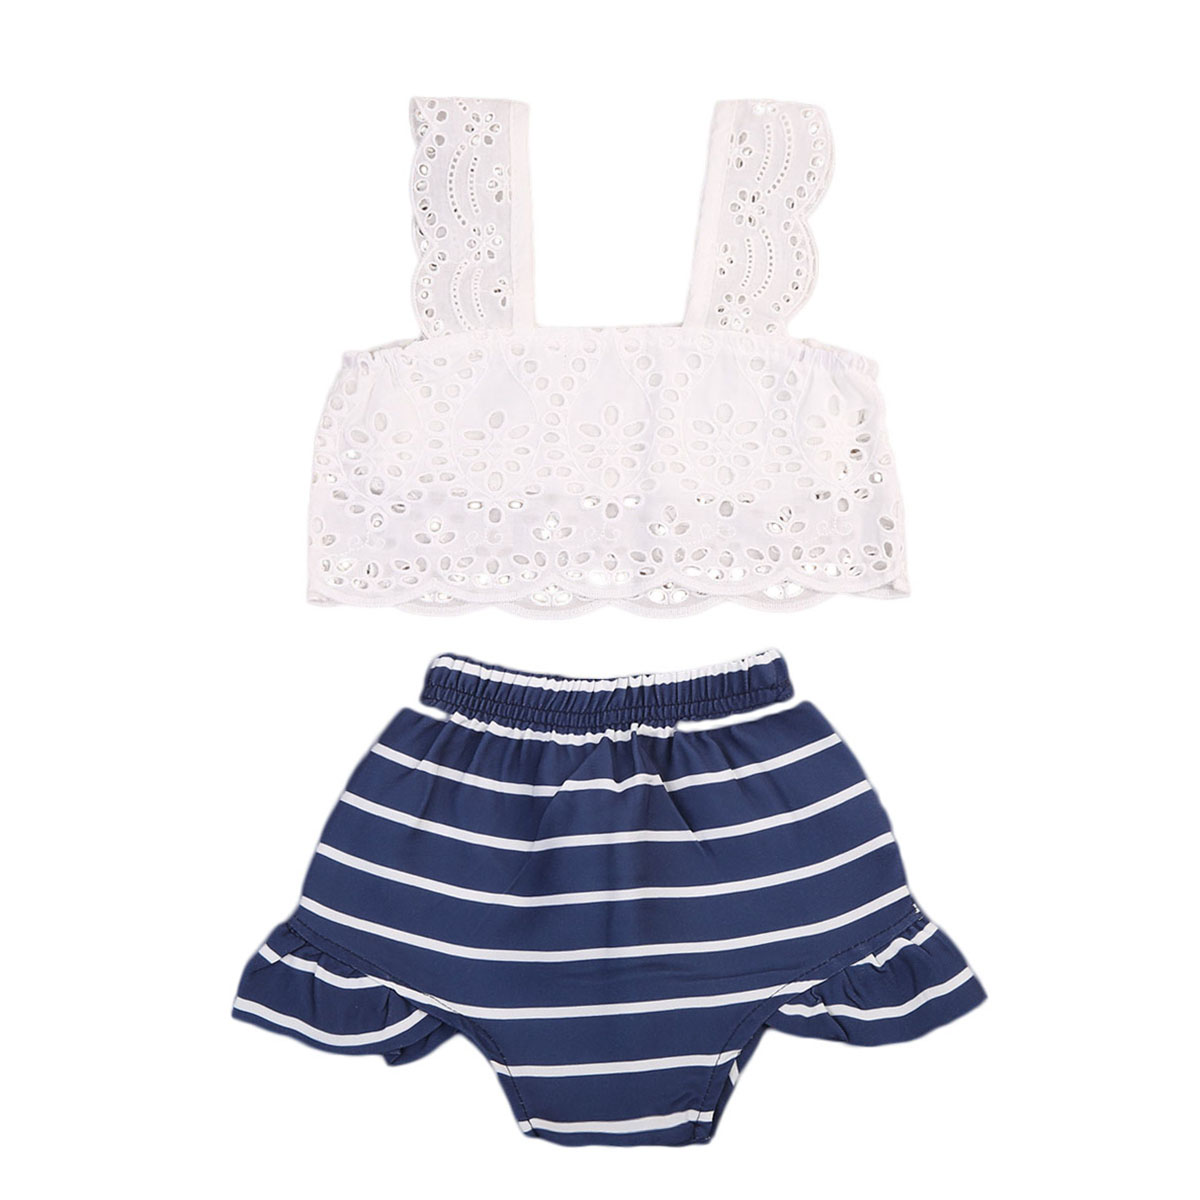 Toddler Kids Baby Girls Outfits Clothes Sets Hollow T-shirt Tops Vest Shorts Striped Clothing Baby Girl 2PCS Summer